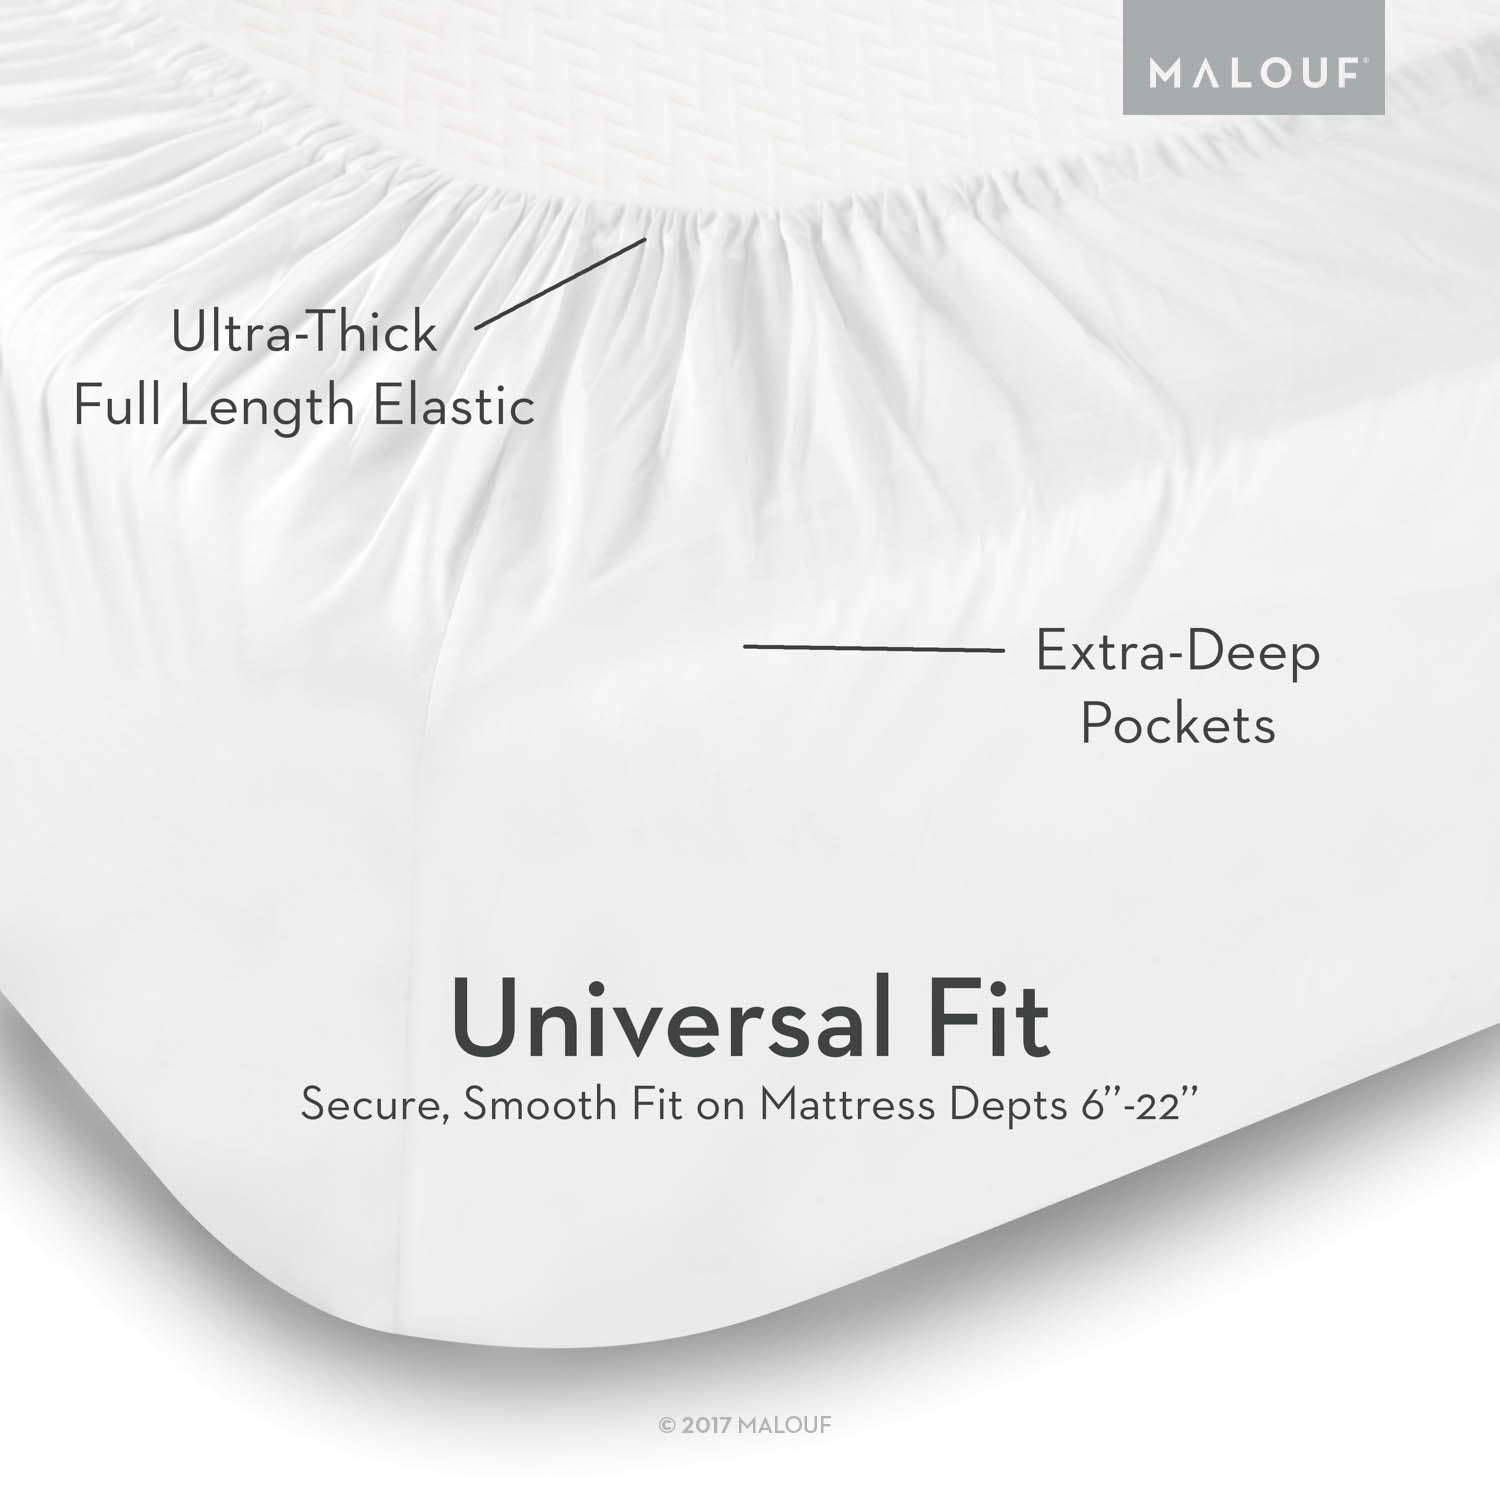 Universal Fit Sheets